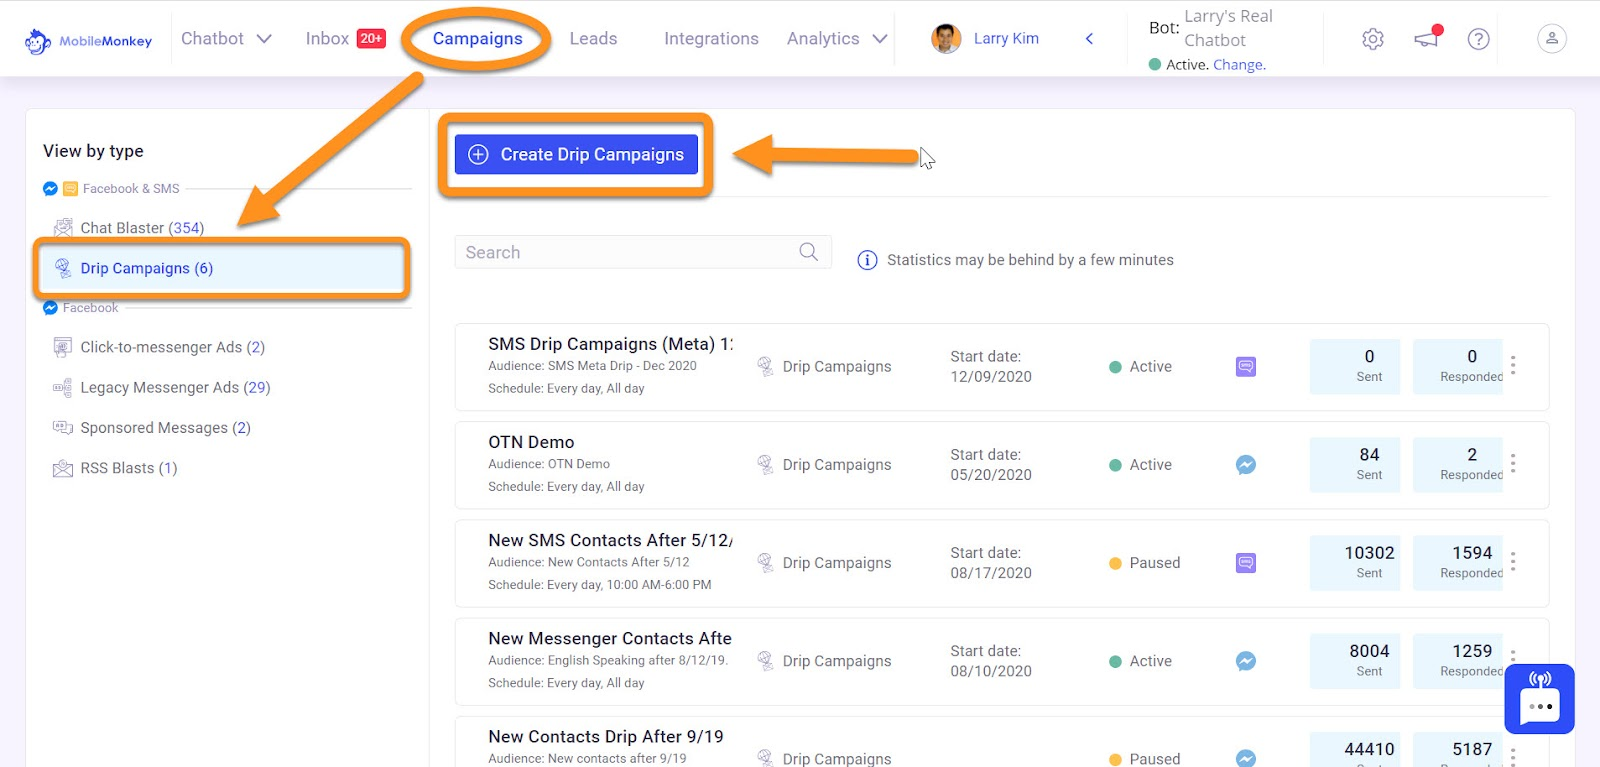 Instagram direct message marketing: Drip Campaigns